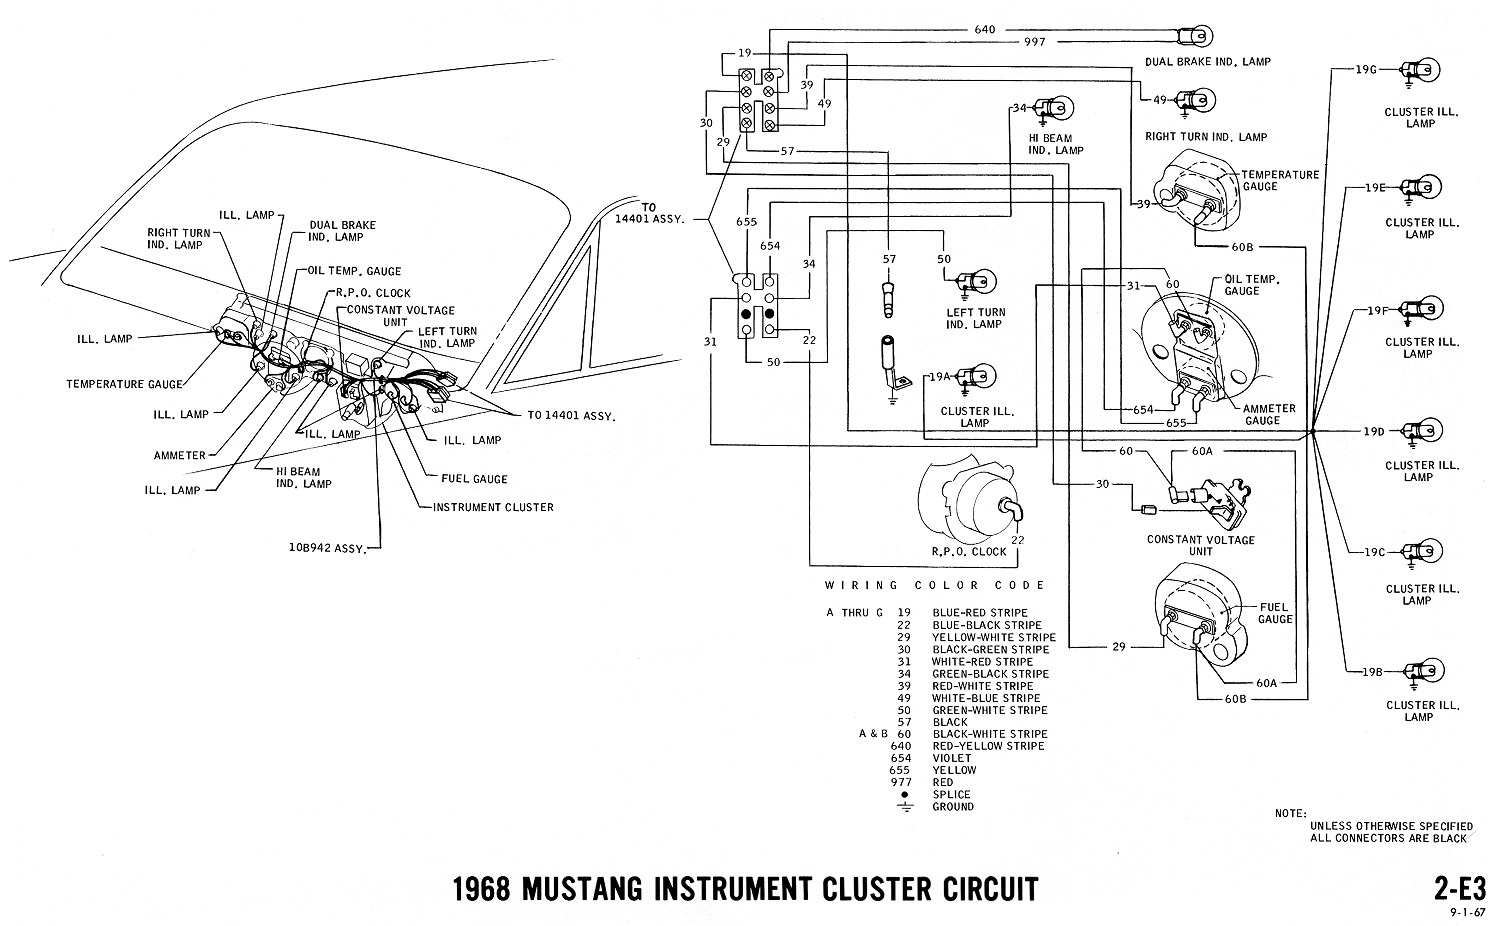 1968 mustang wiring diagram instruments 1965 mustang wiring diagram 1965 lincoln wiring diagram \u2022 wiring 1969 mustang dash wiring diagram at fashall.co